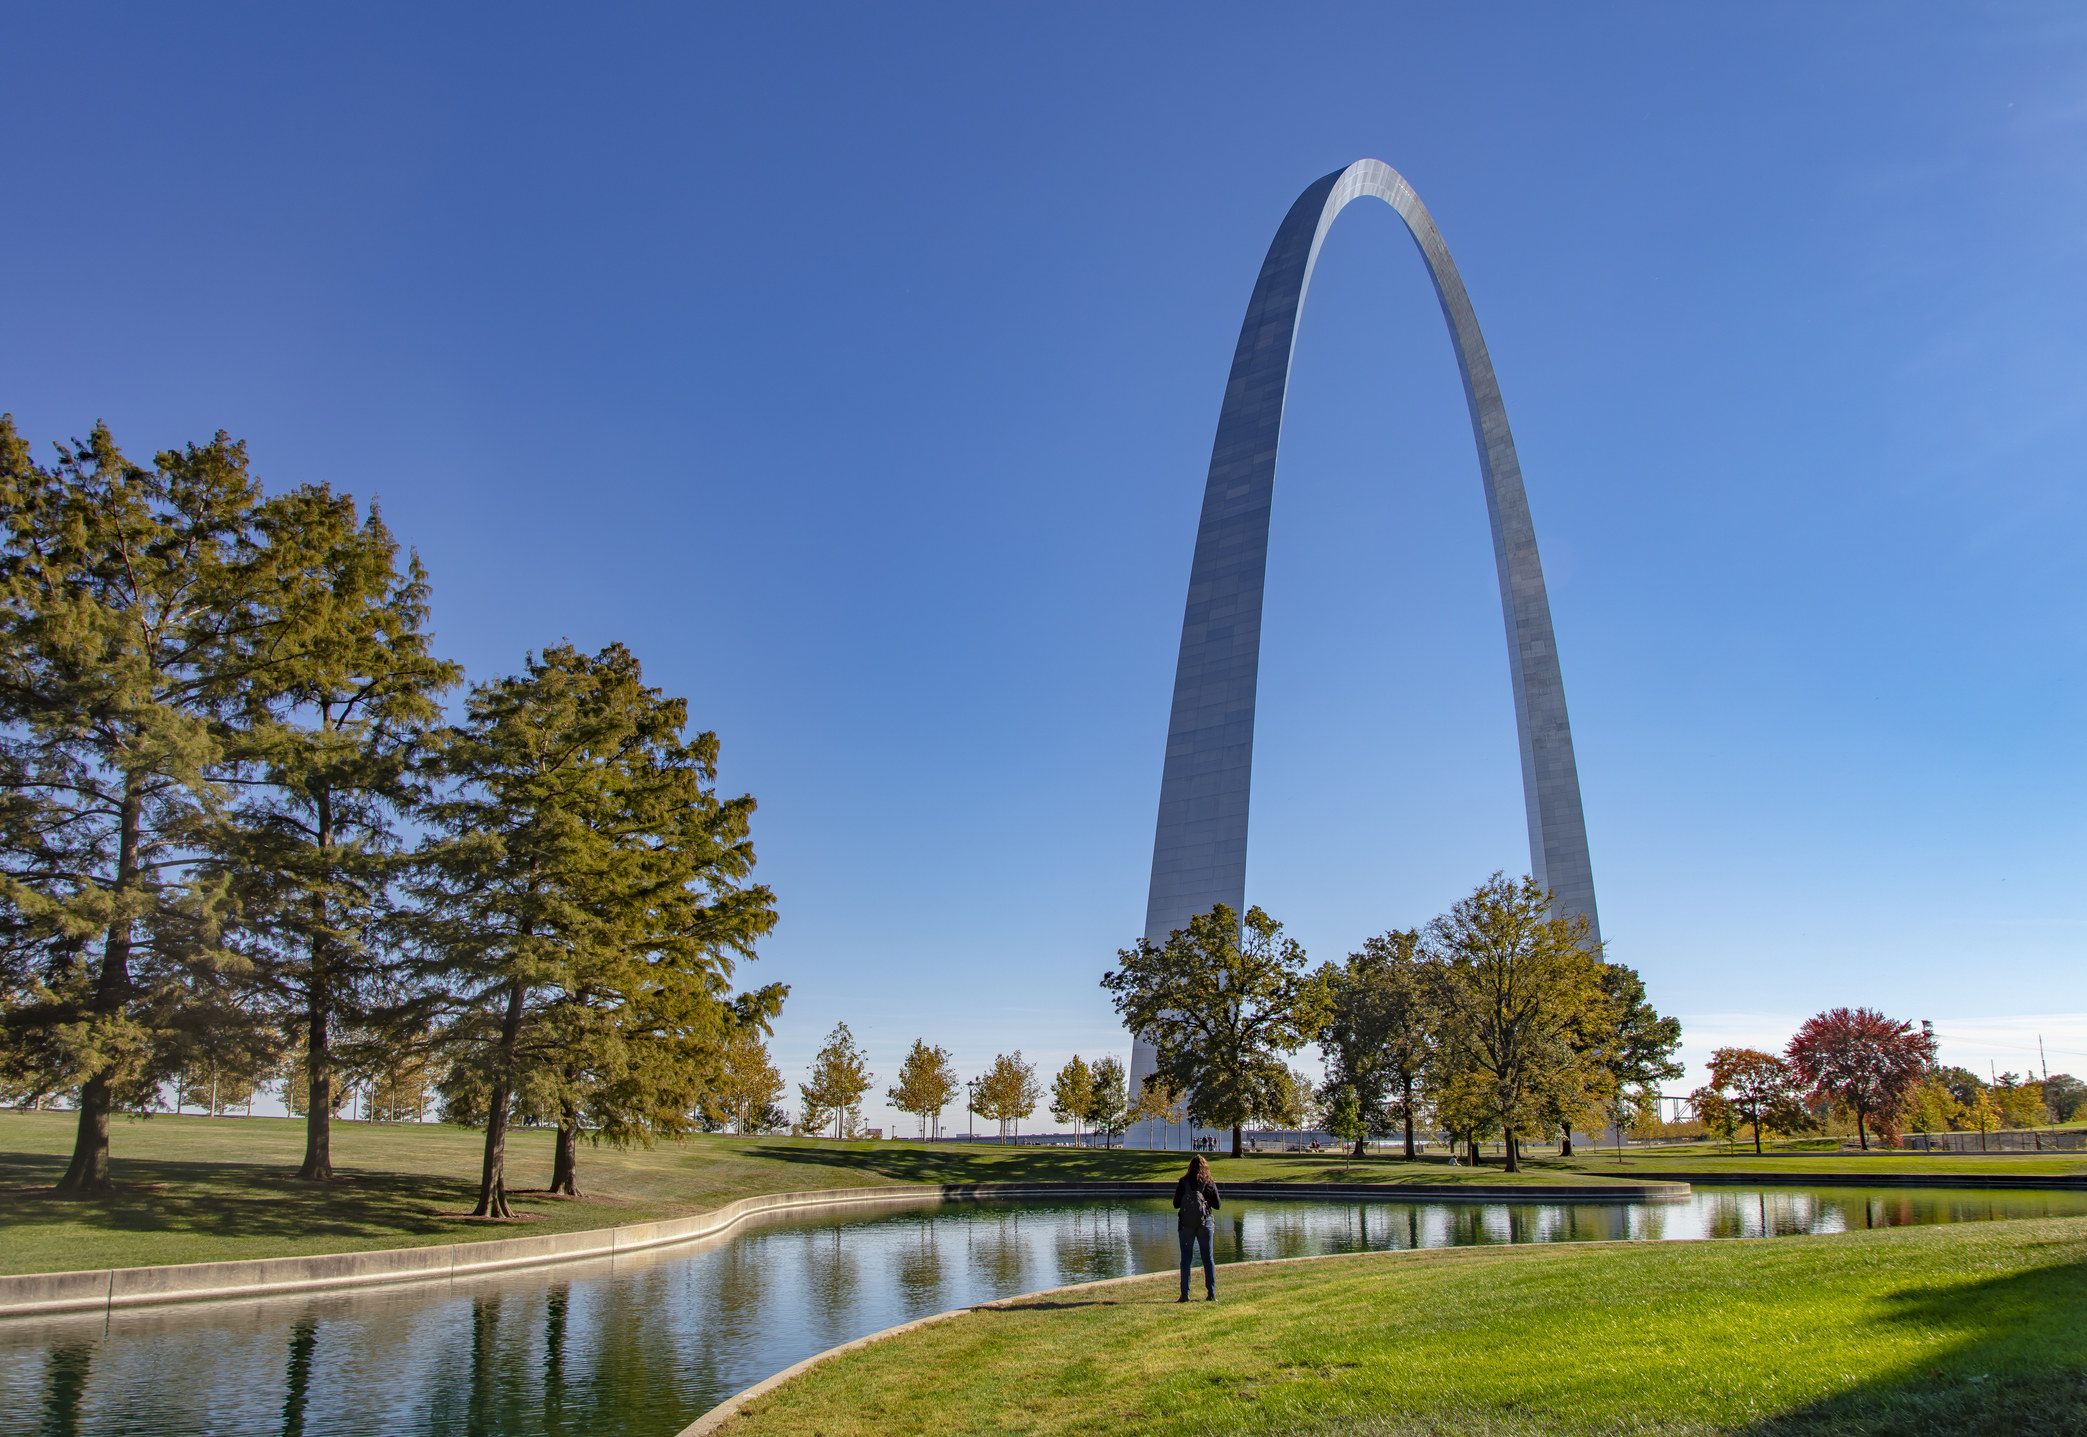 The gateway arch against a cloudless blue sky with grass and trees in the foreground